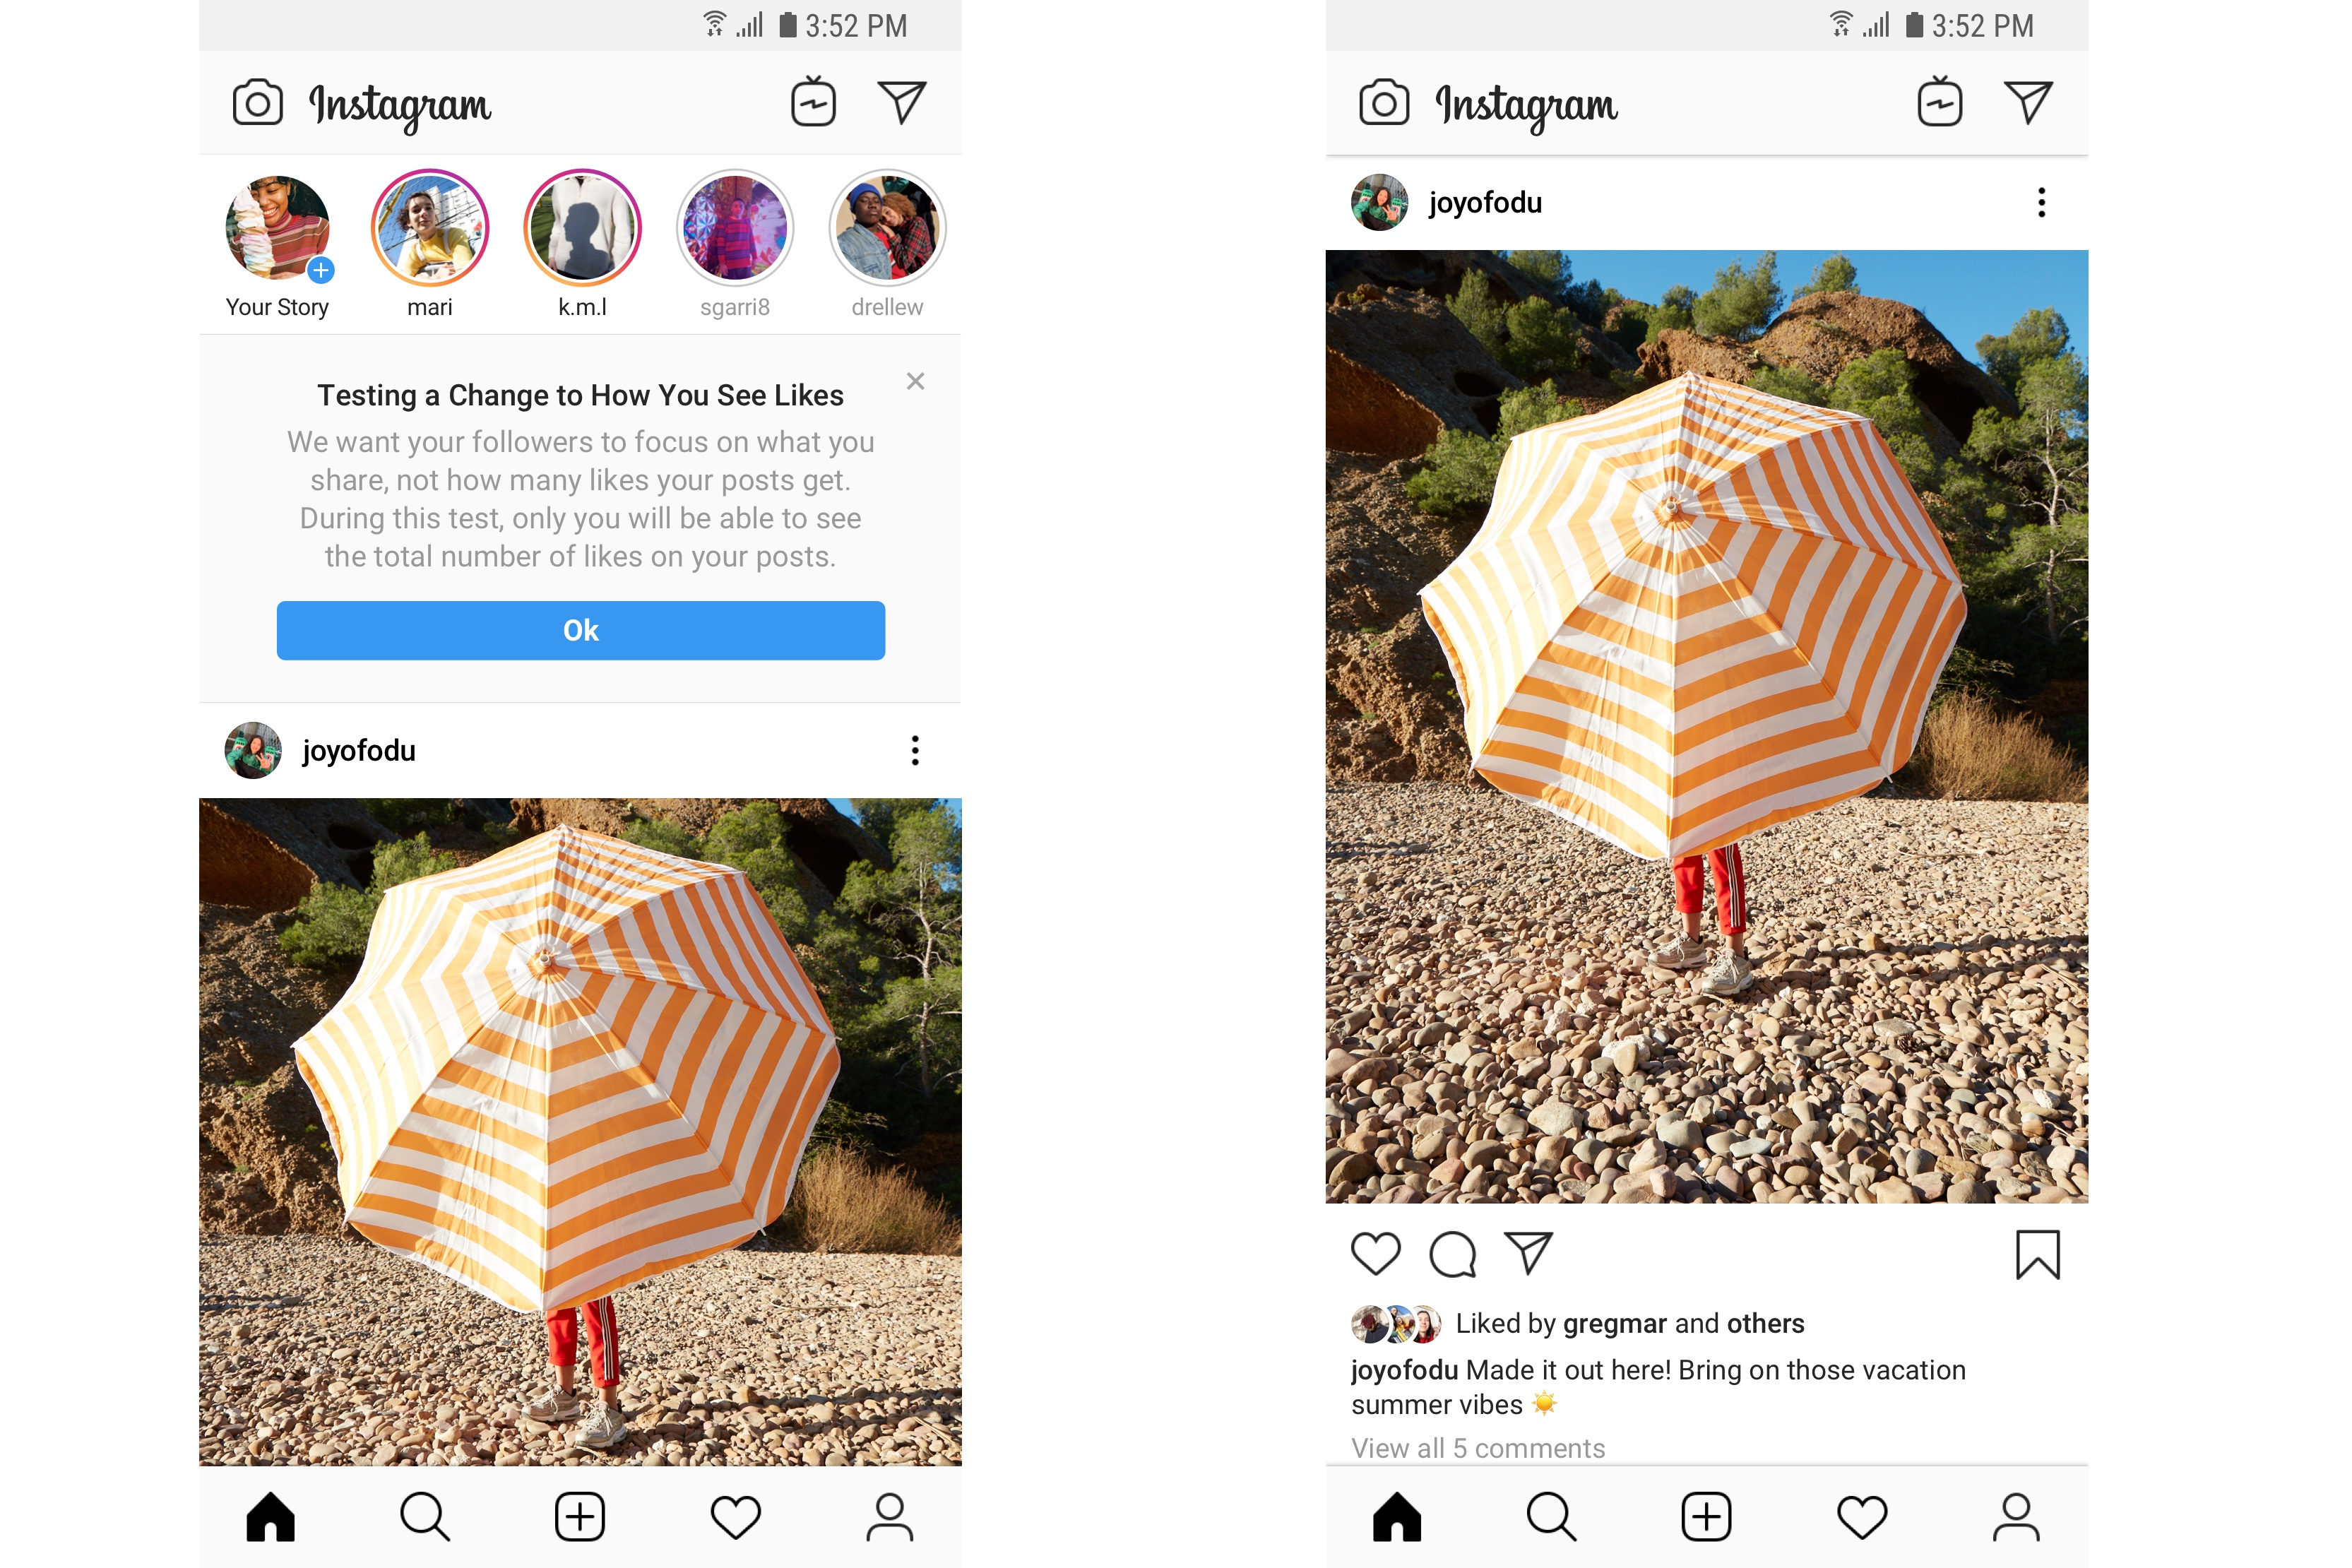 Instagram - The Verge